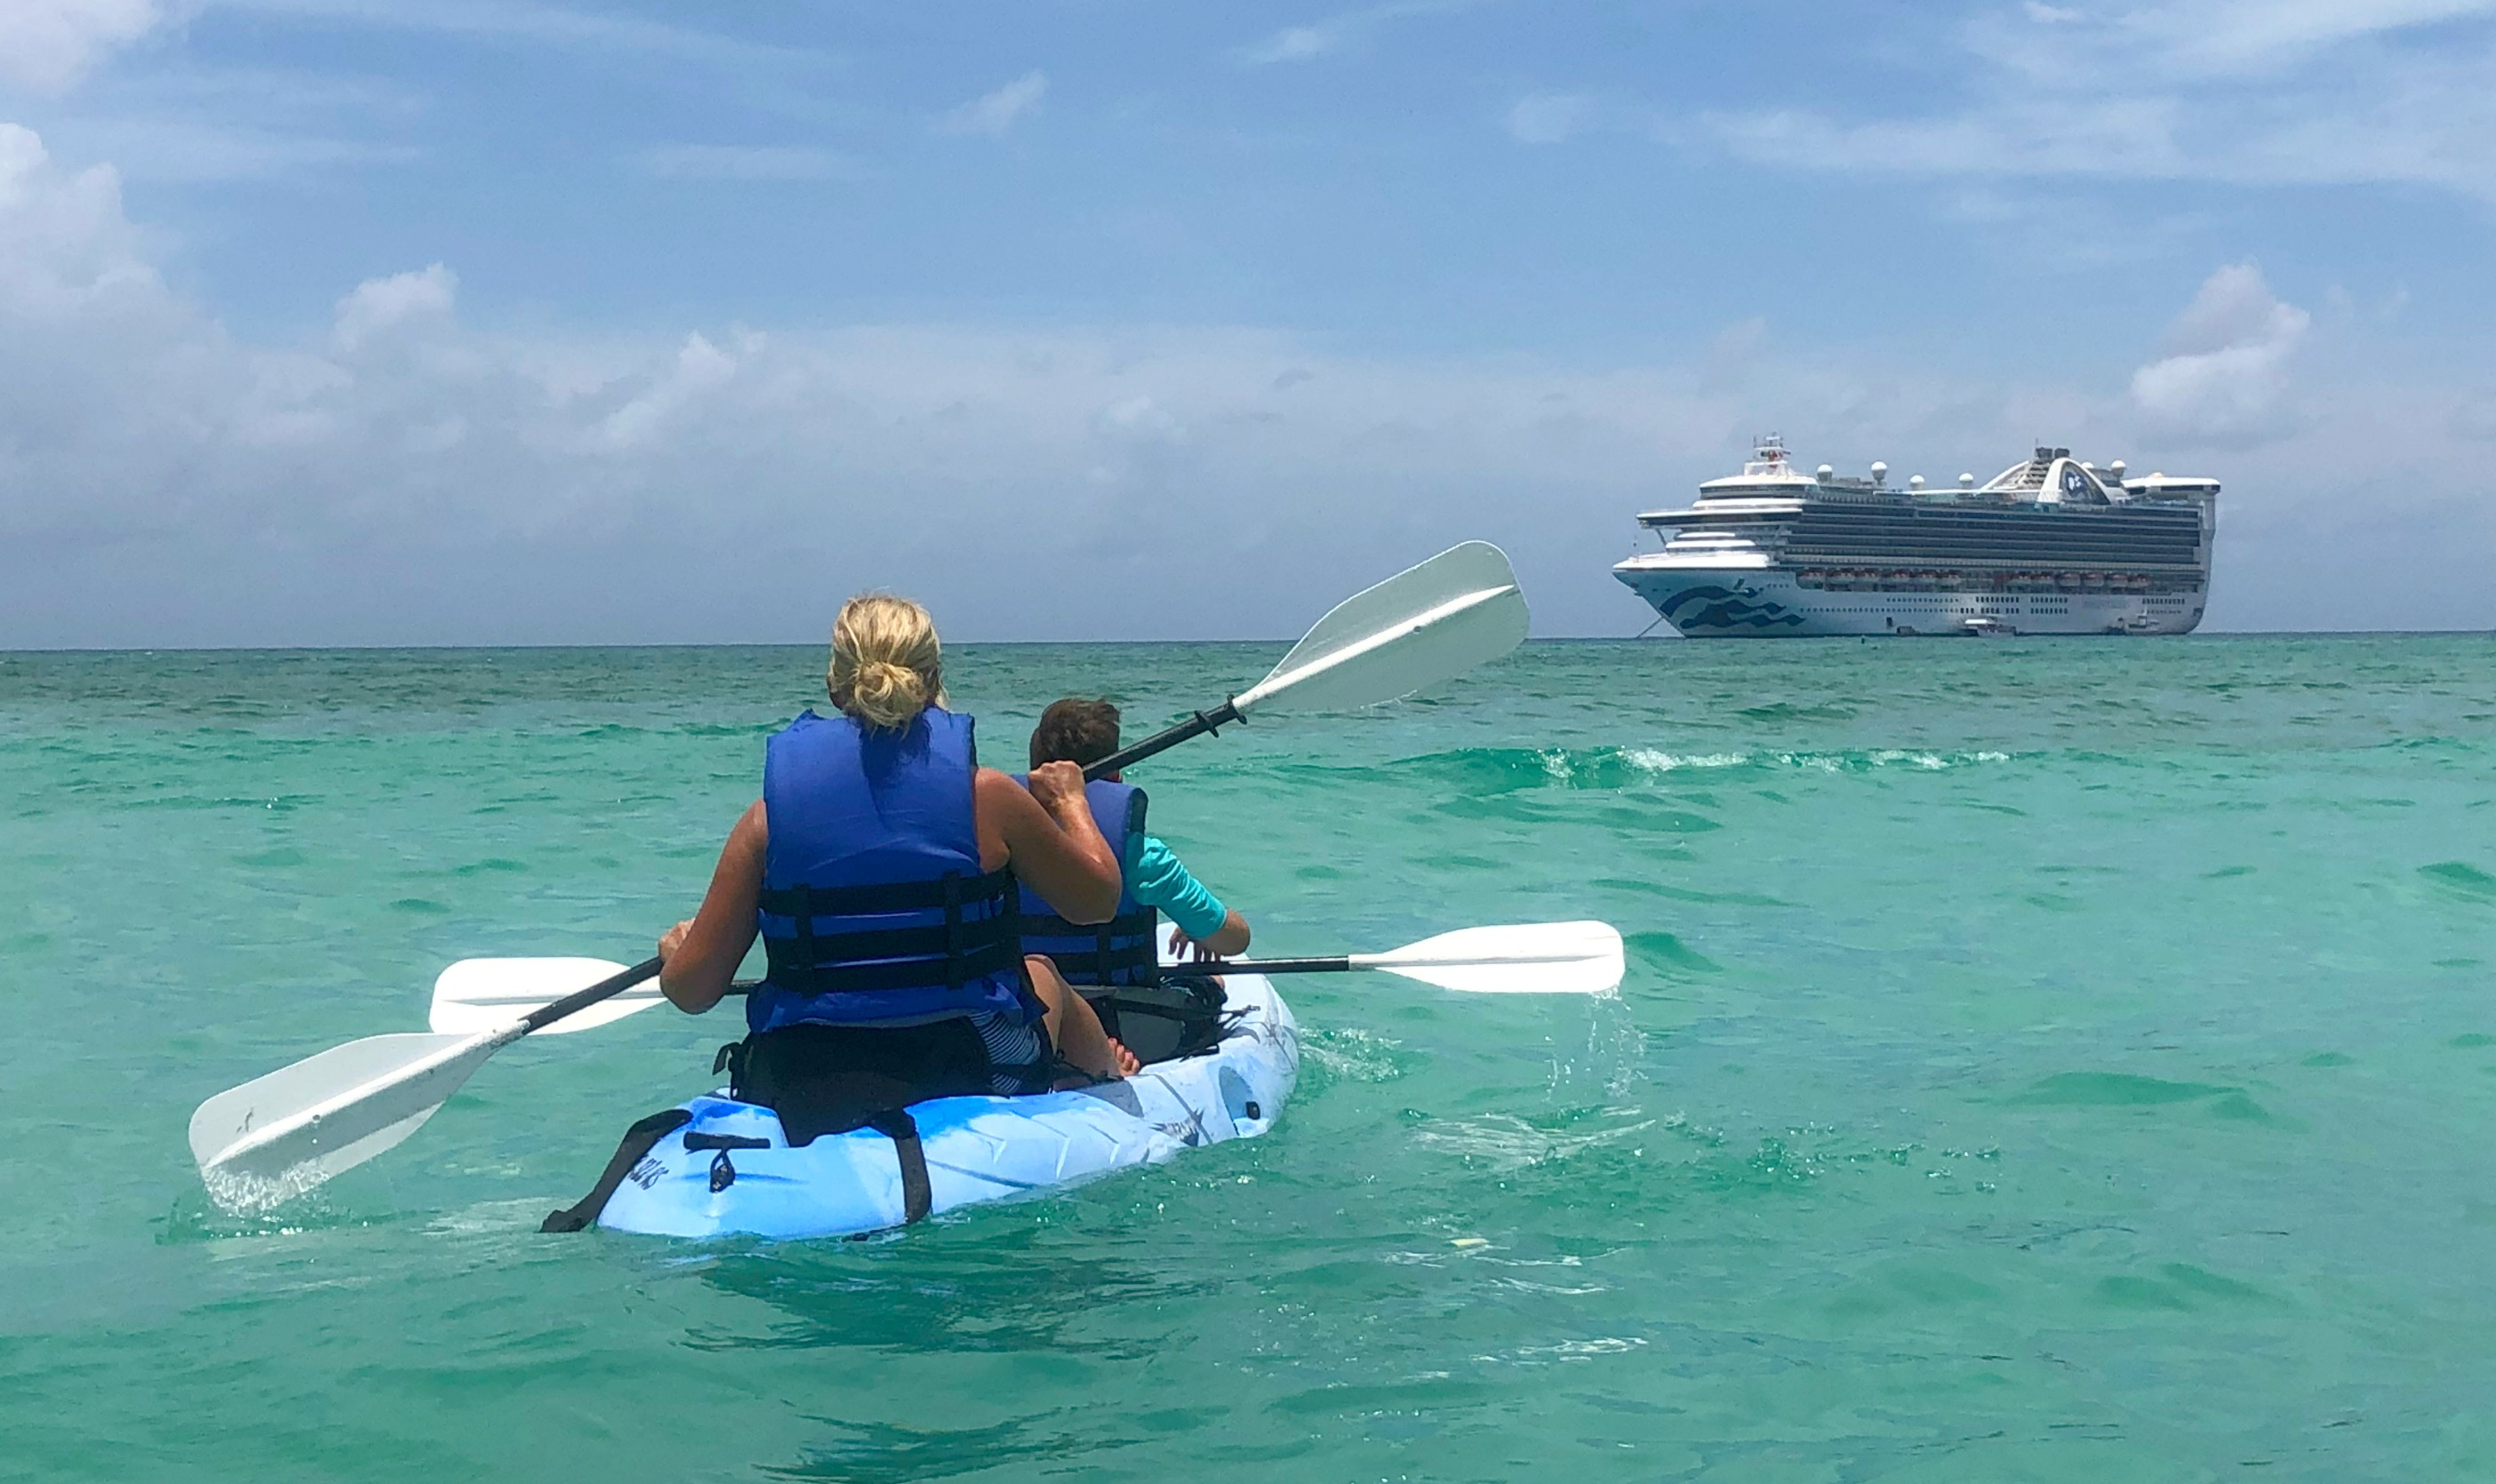 Kayaking at Princess Cays is a great way for a special experience together.